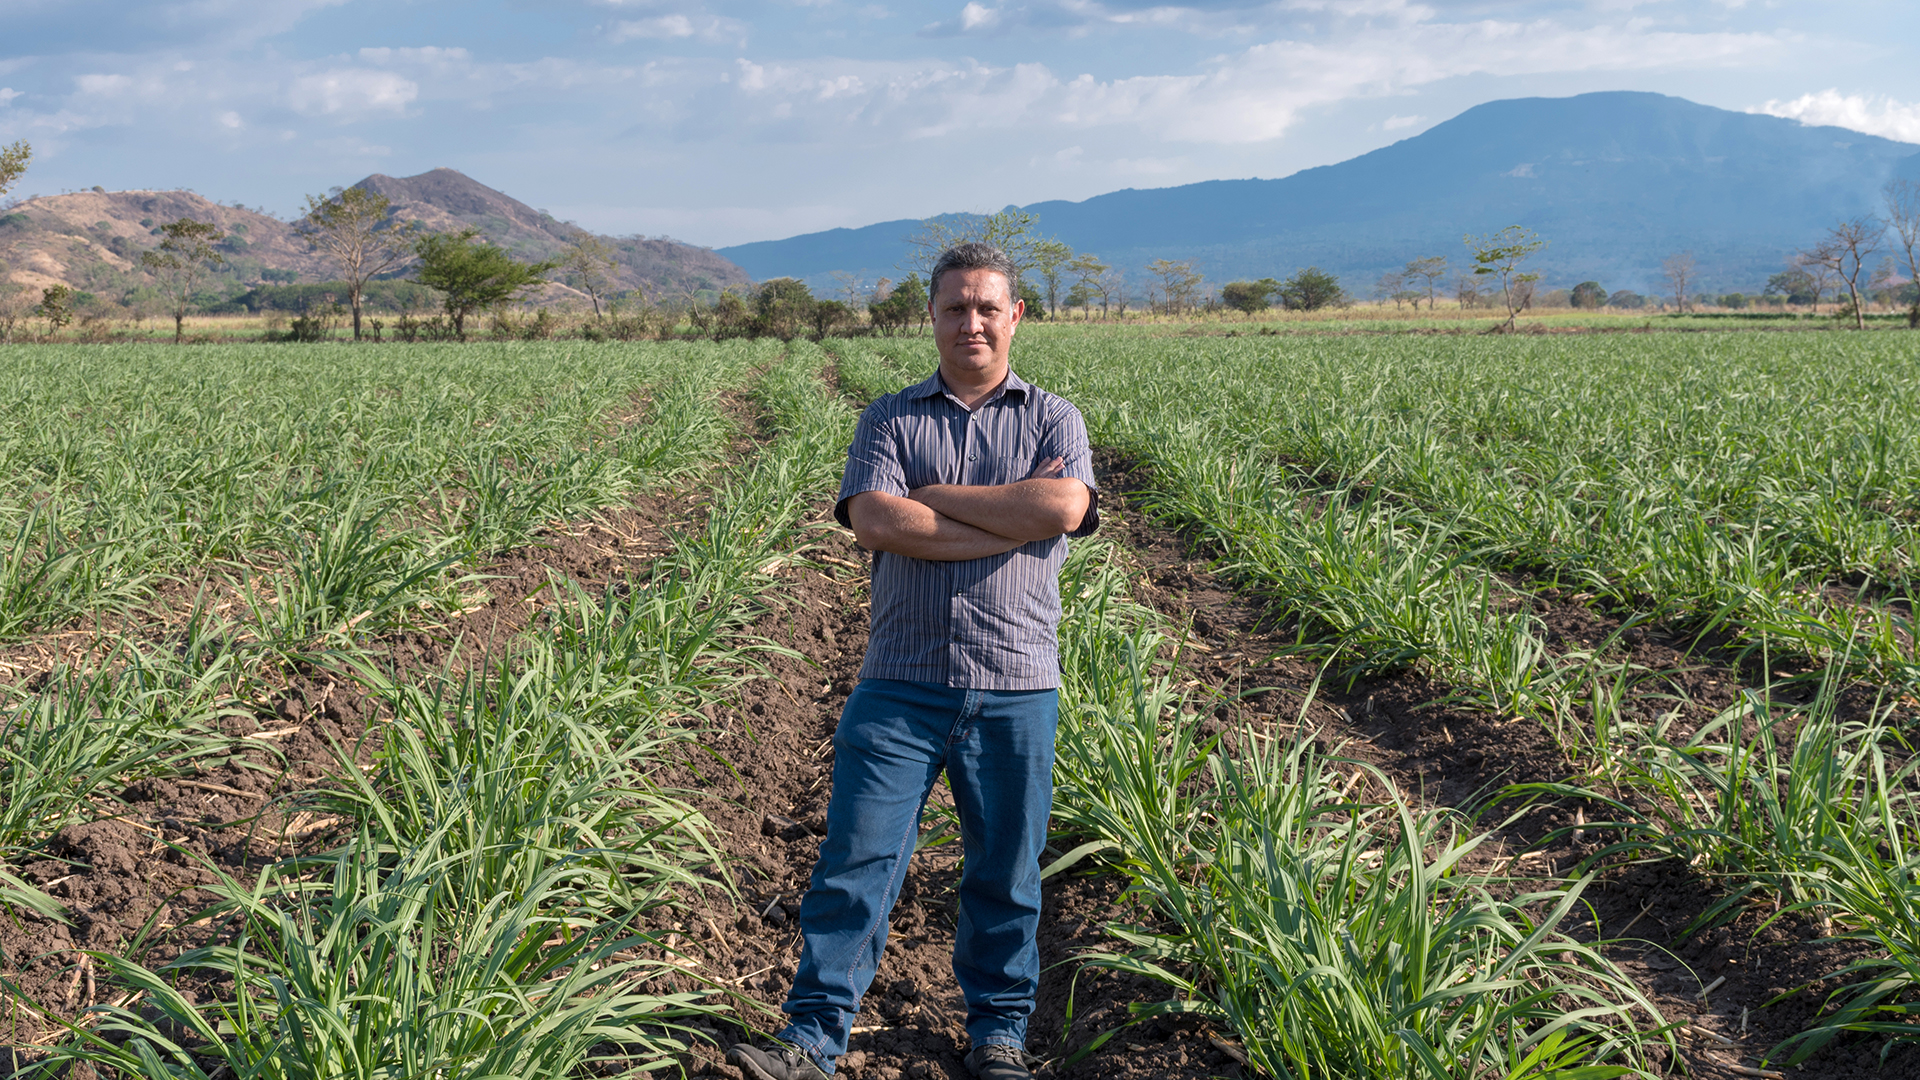 On his farm near Santa Ana,  El Salvador, Carlos Martinez stands in a sugarcane field plowed with a tractor and machinery he built.  Carlos Eduardo Somoza Vargas